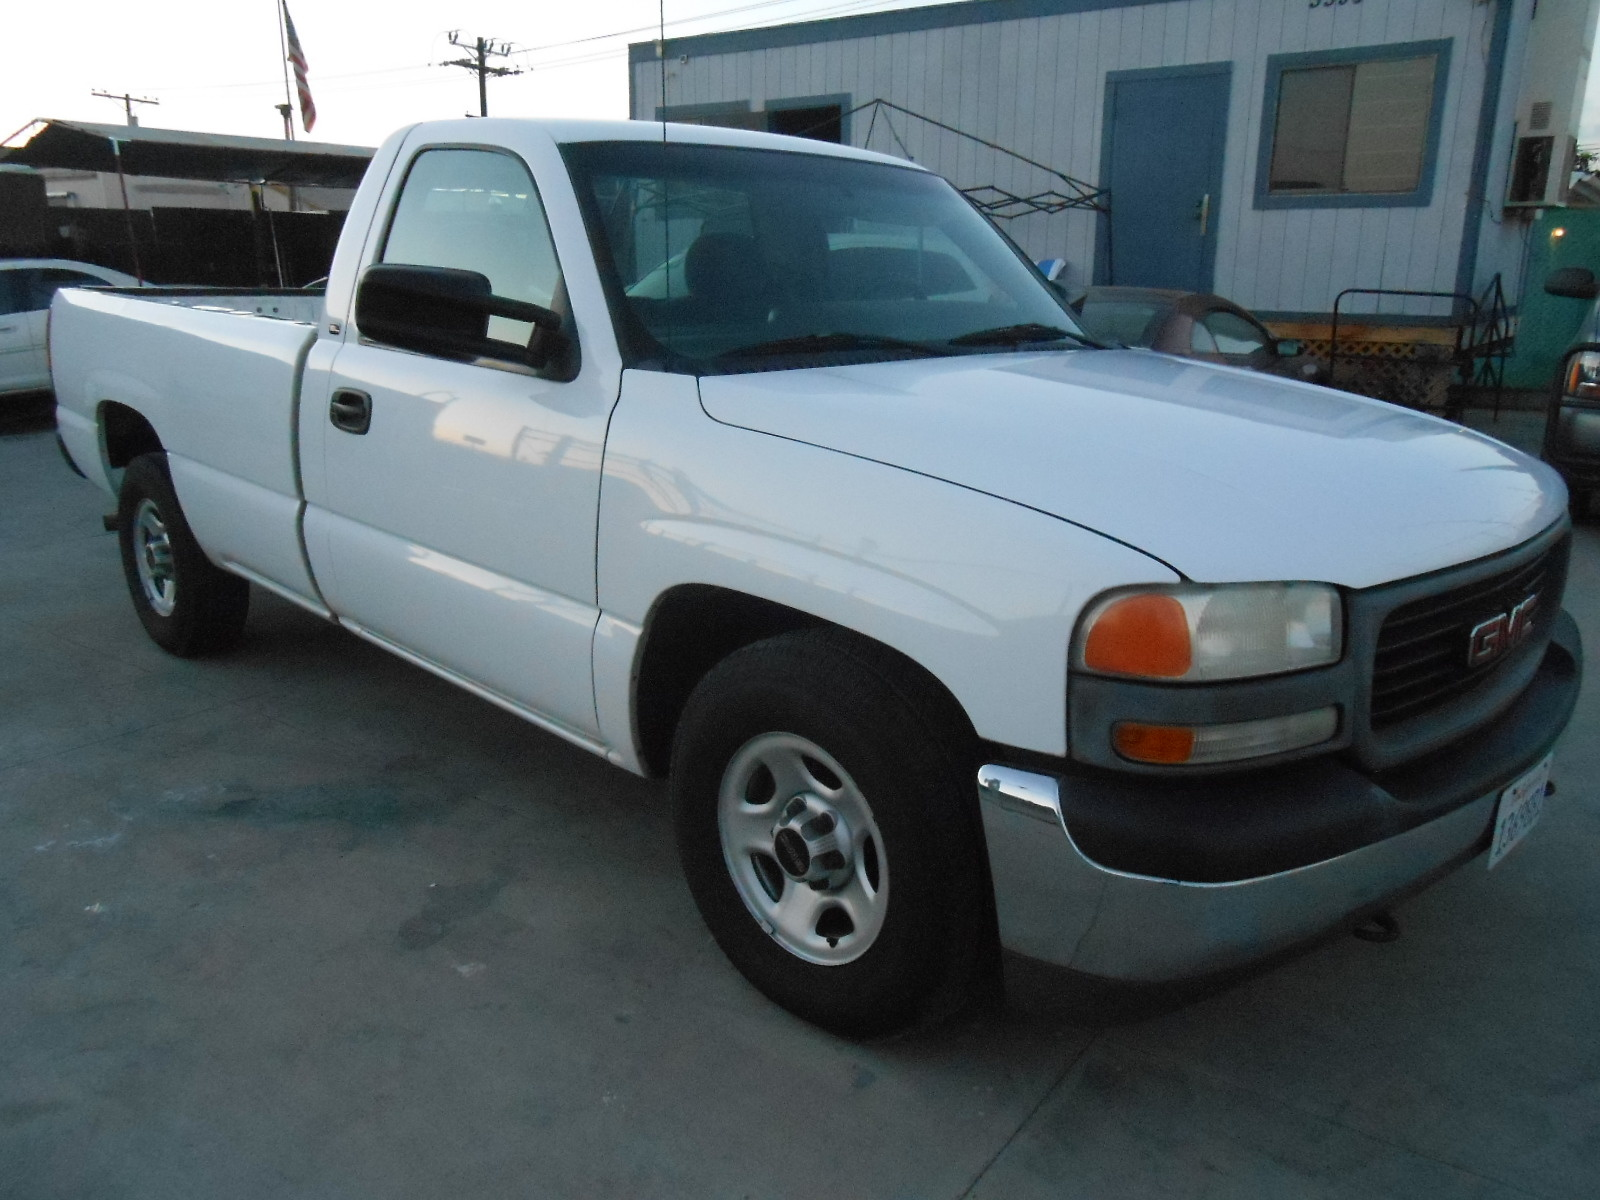 GMC Canyon in addition 2004 Gmc Sierra 1500 Pictures C1923 pi36378043 besides 2014 Gmc Acadia Gets One New Feature Rpo Central additionally 2015 Yukon Denali Summit White together with Interior 20Color 60992002. on 2009 gmc sierra 1500 sle